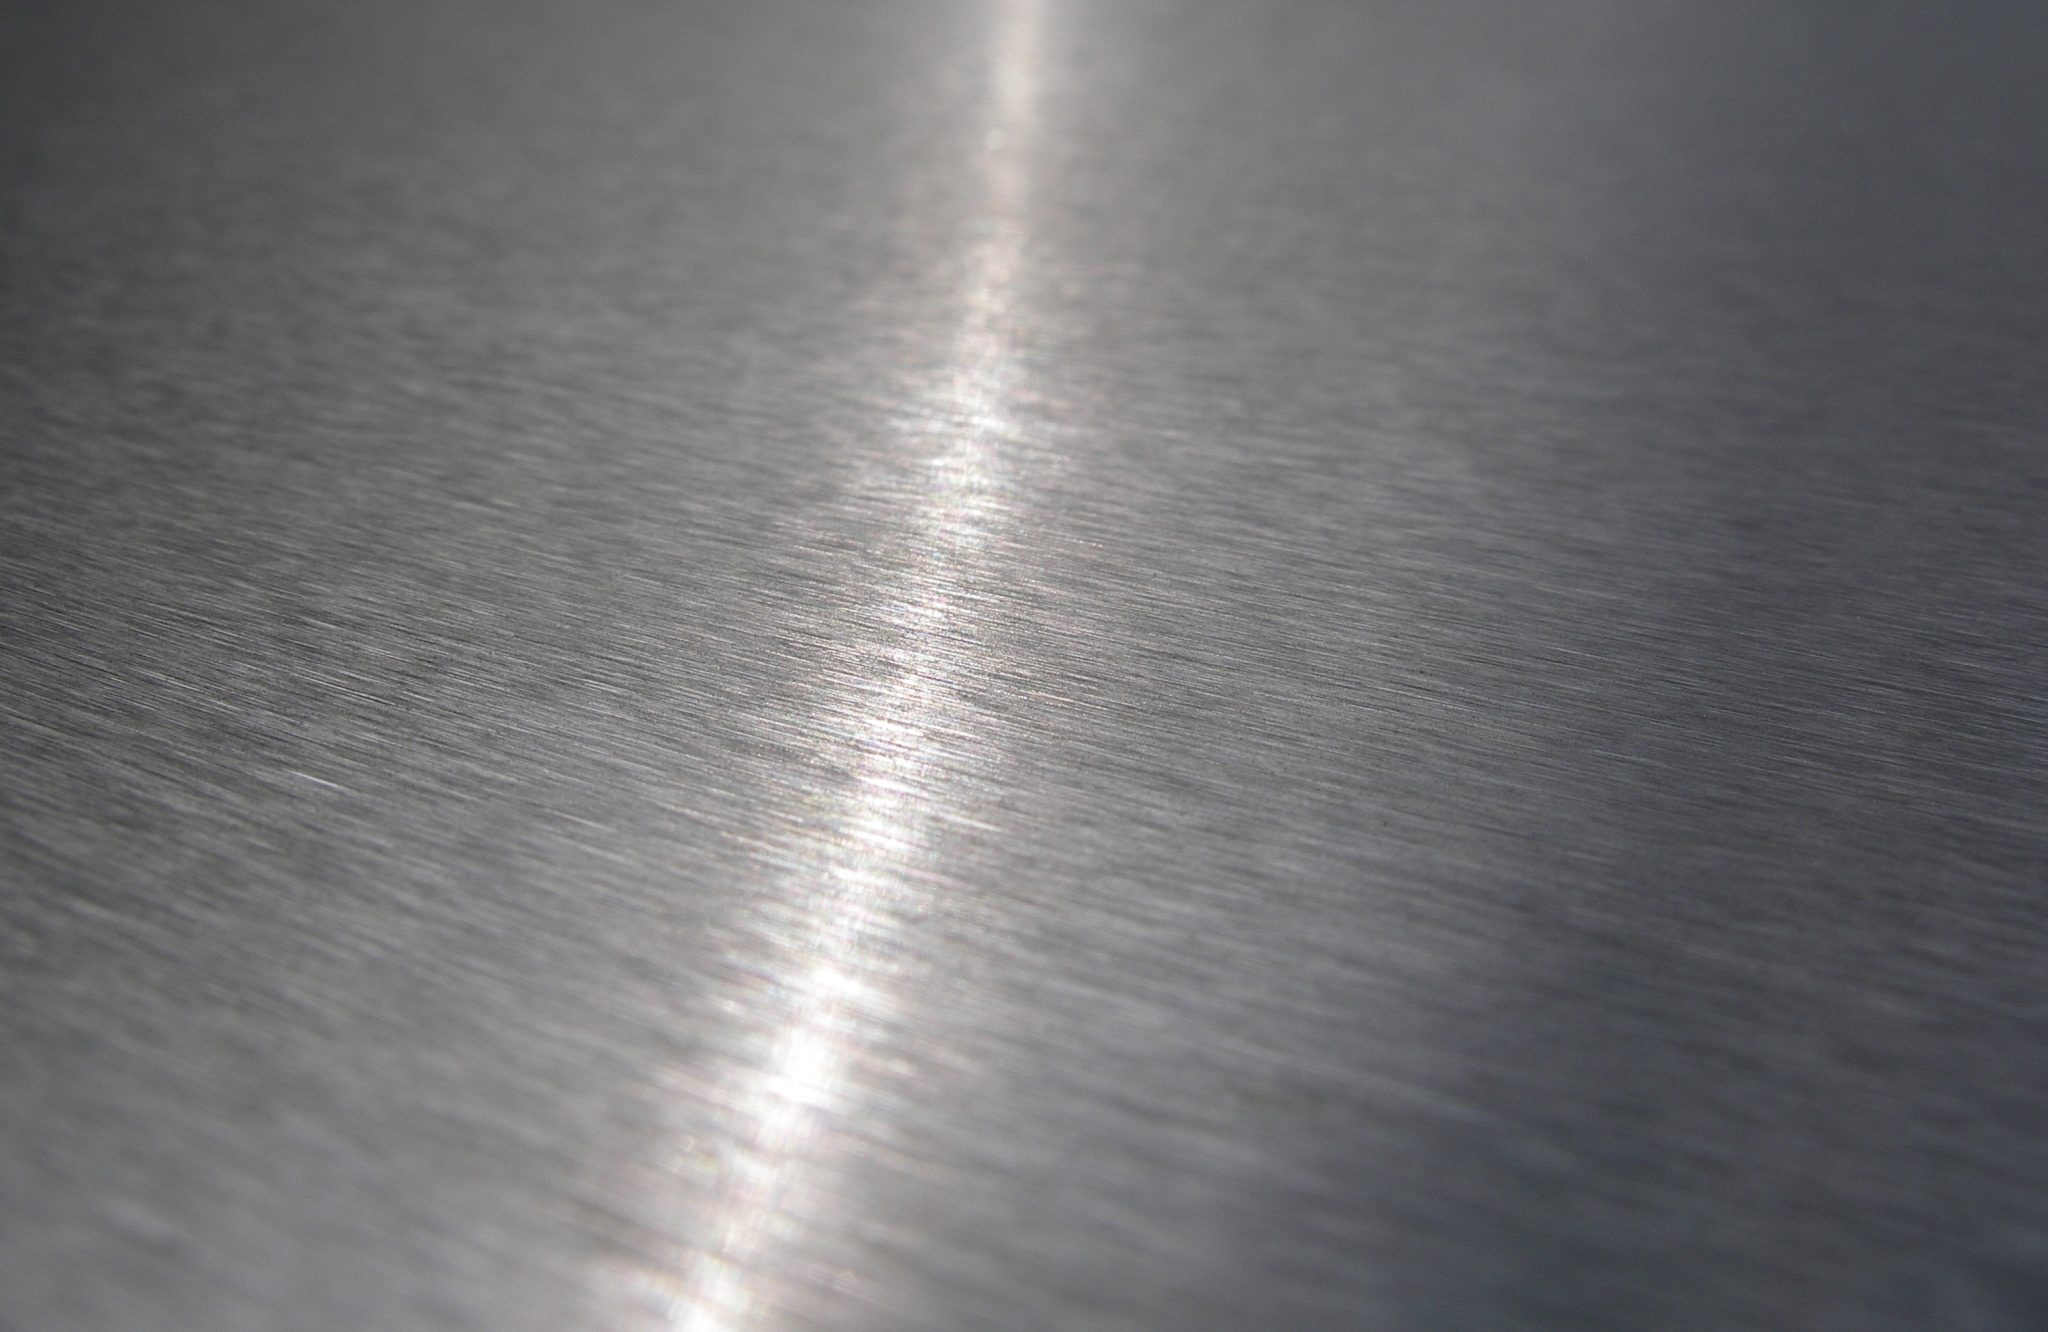 brushed-steel-1175730